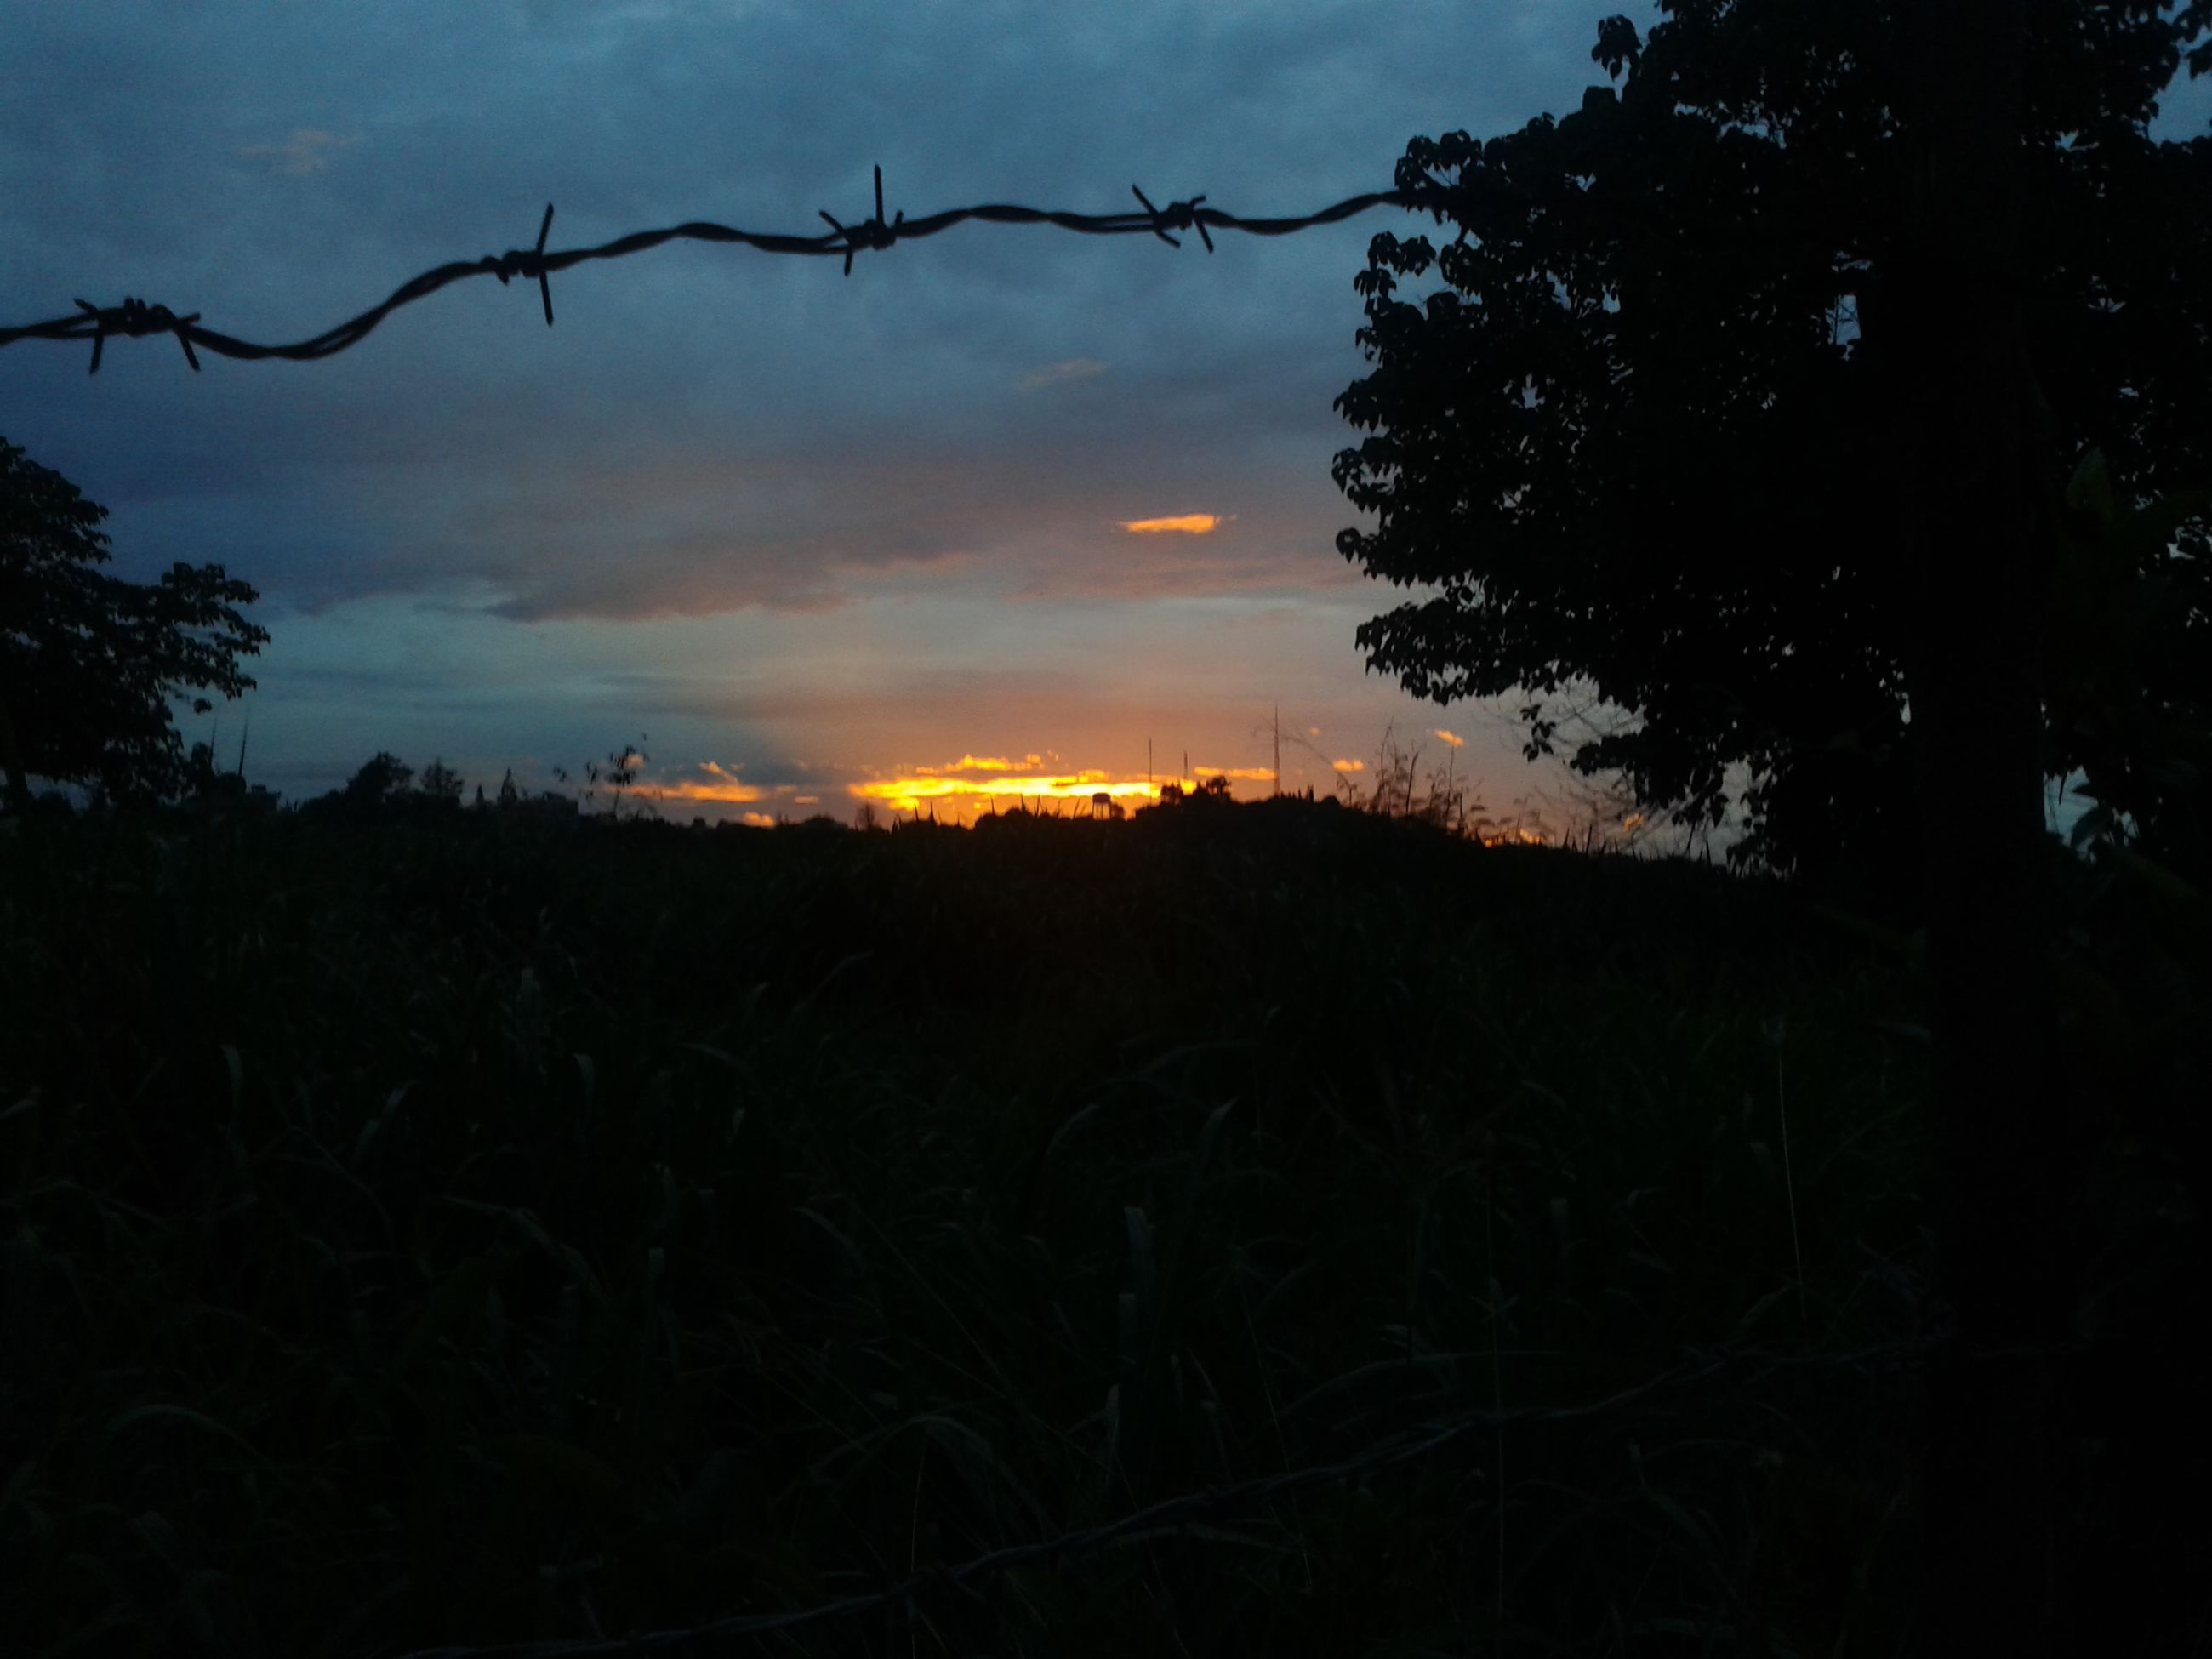 sunset, silhouette, sky, tranquility, tranquil scene, scenics, beauty in nature, nature, tree, field, cloud - sky, landscape, growth, dusk, plant, orange color, cloud, idyllic, dark, outdoors